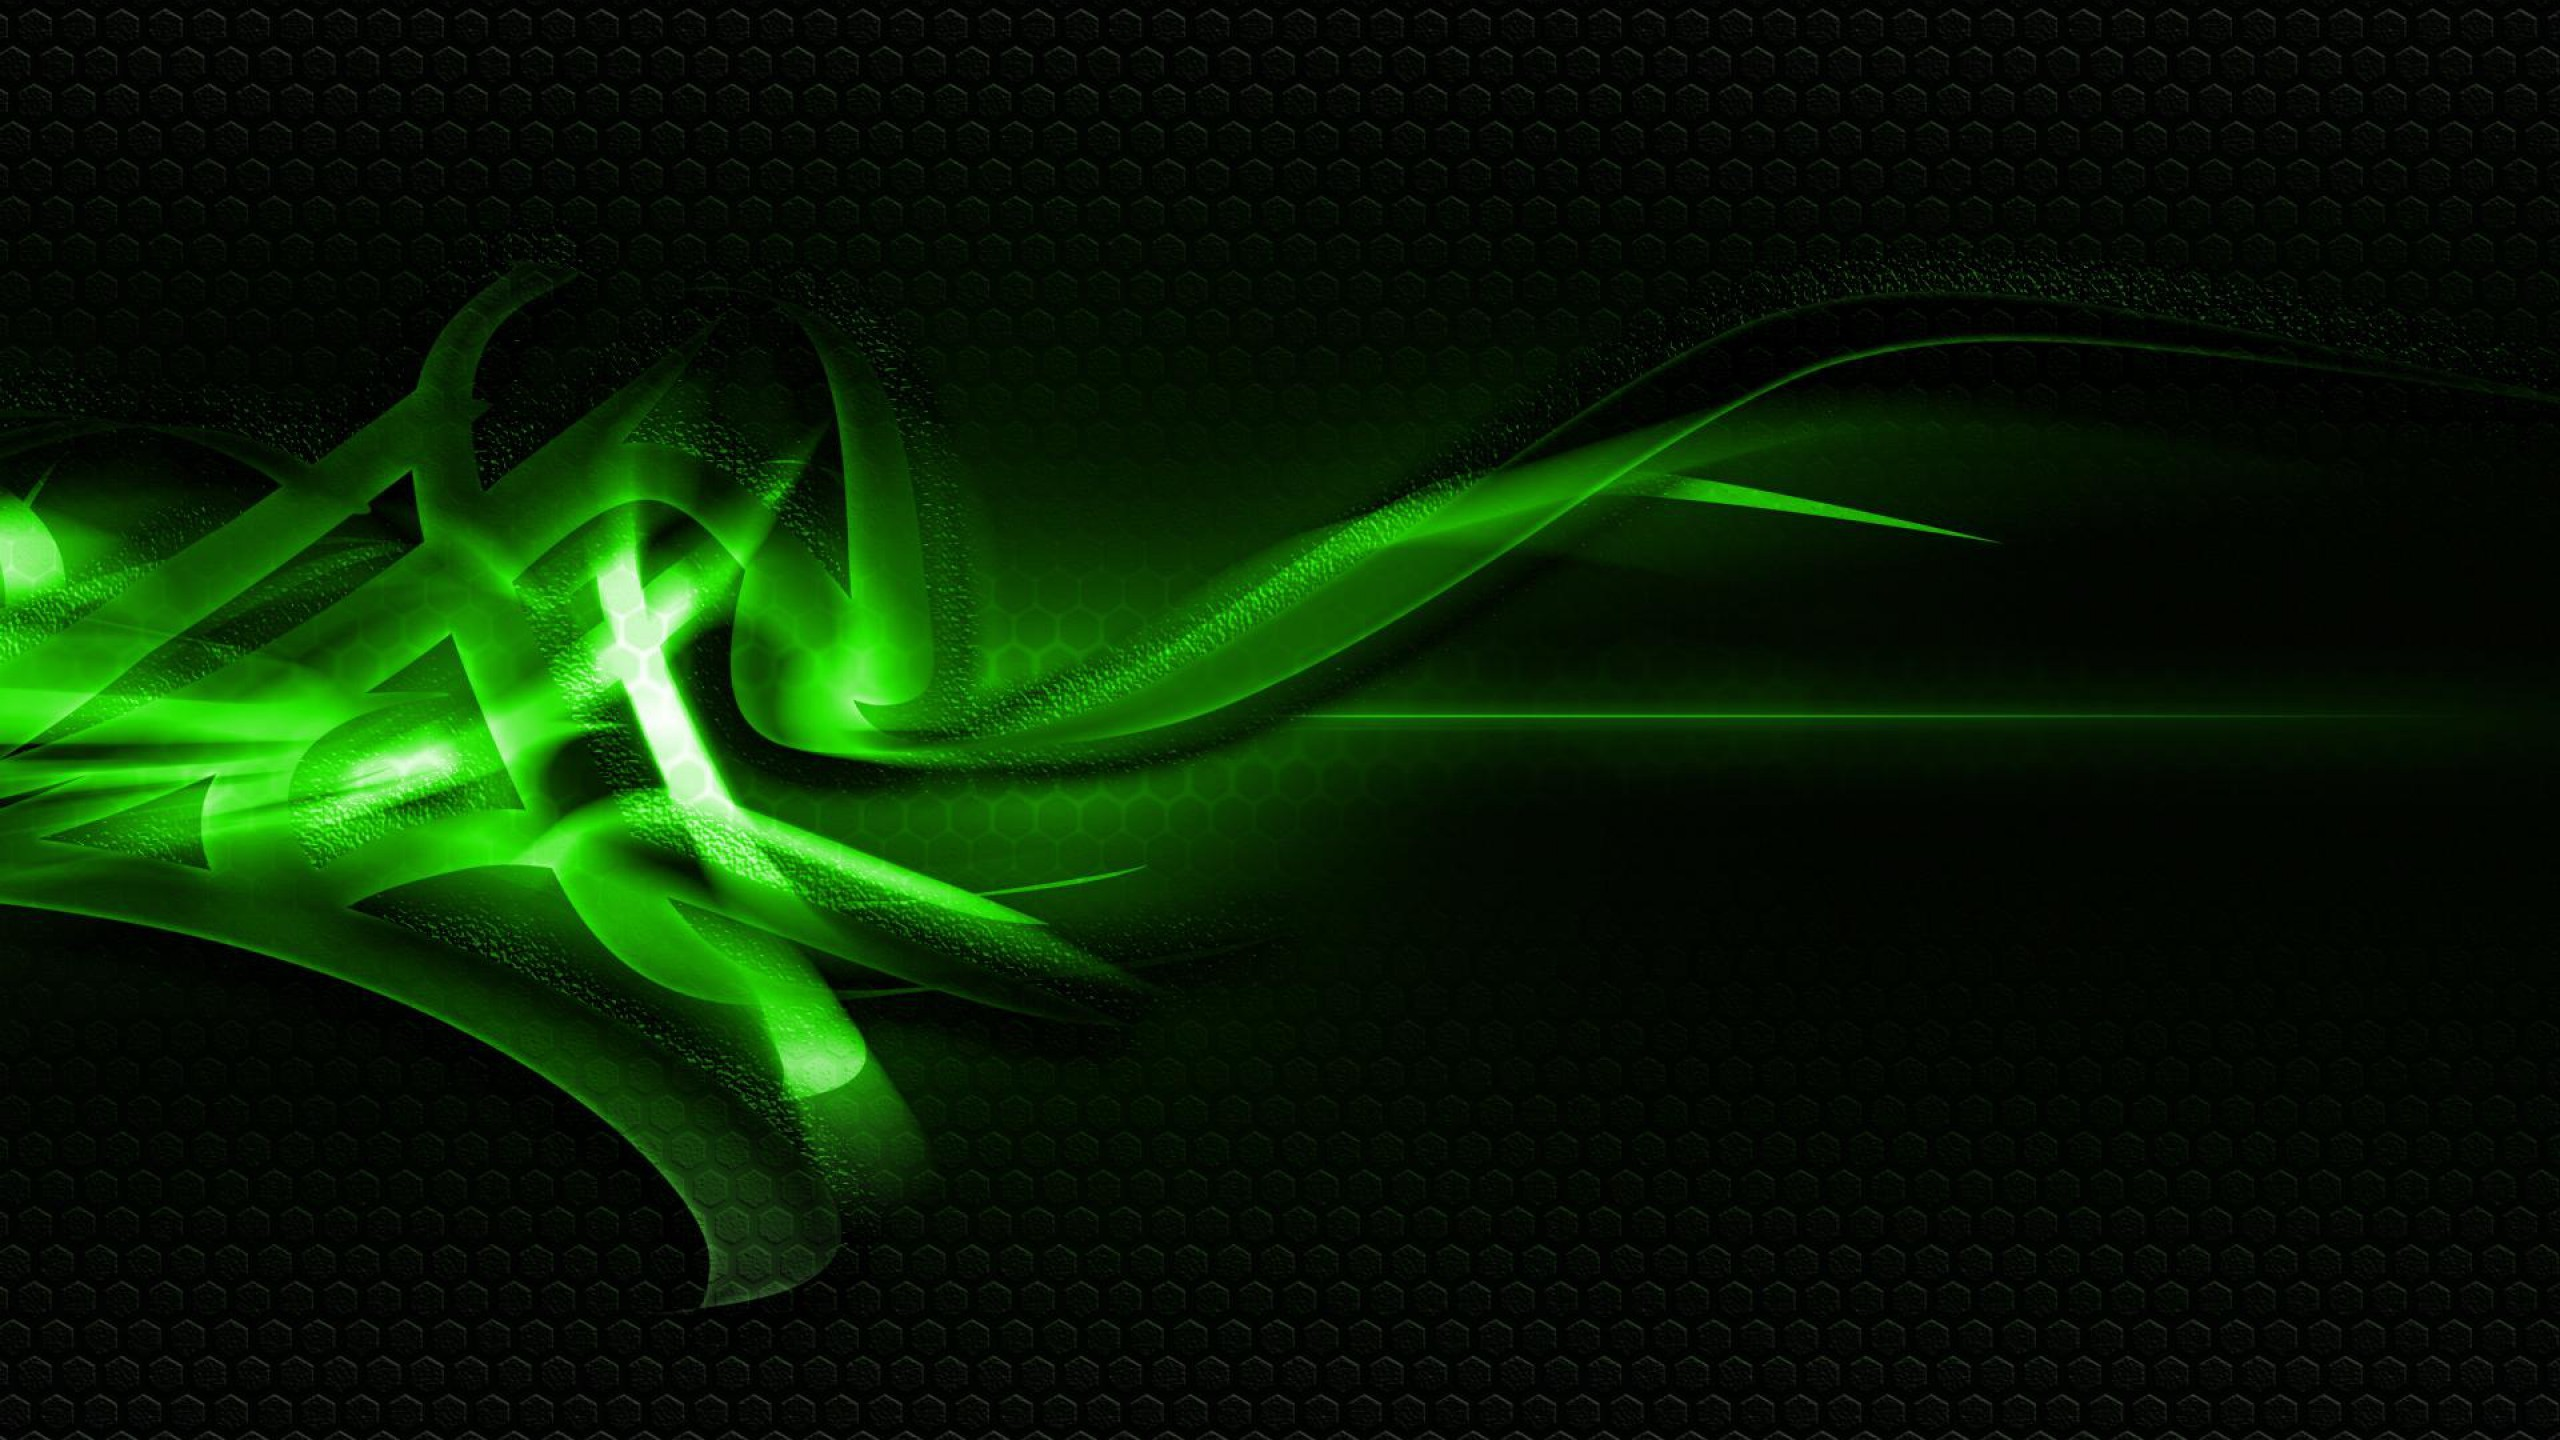 2560x1440 Green And Black Abstract Wallpaper